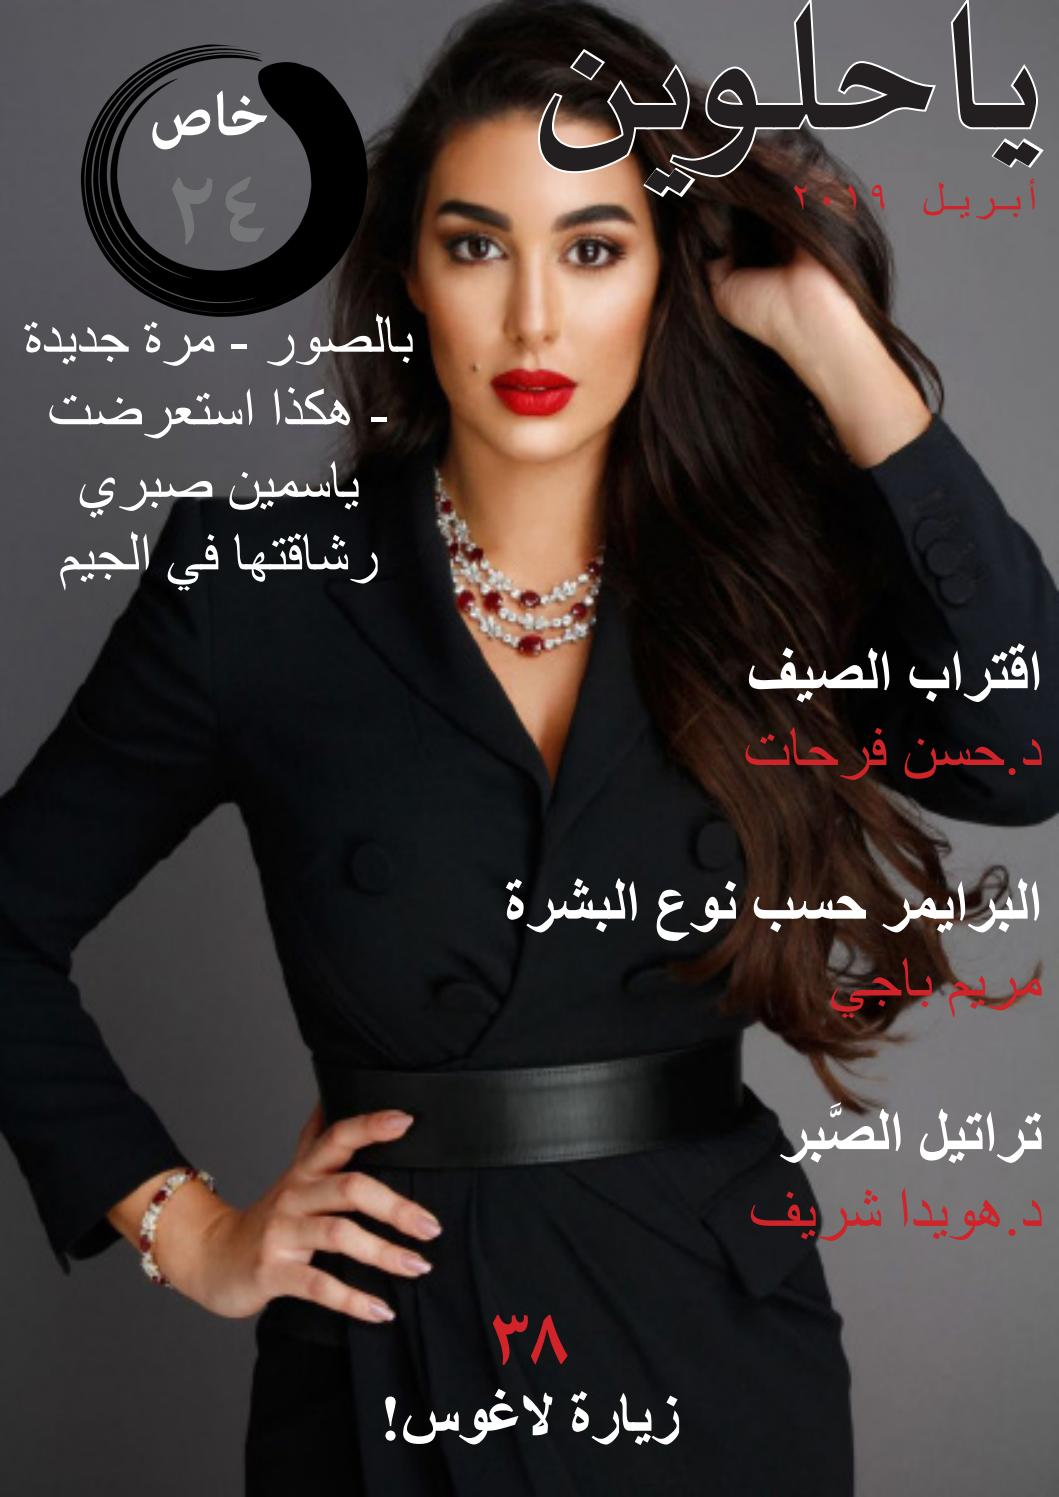 d7ad58ae64432 Ya7elween Apil 2019 by Welcome to Ya 7elween! - issuu